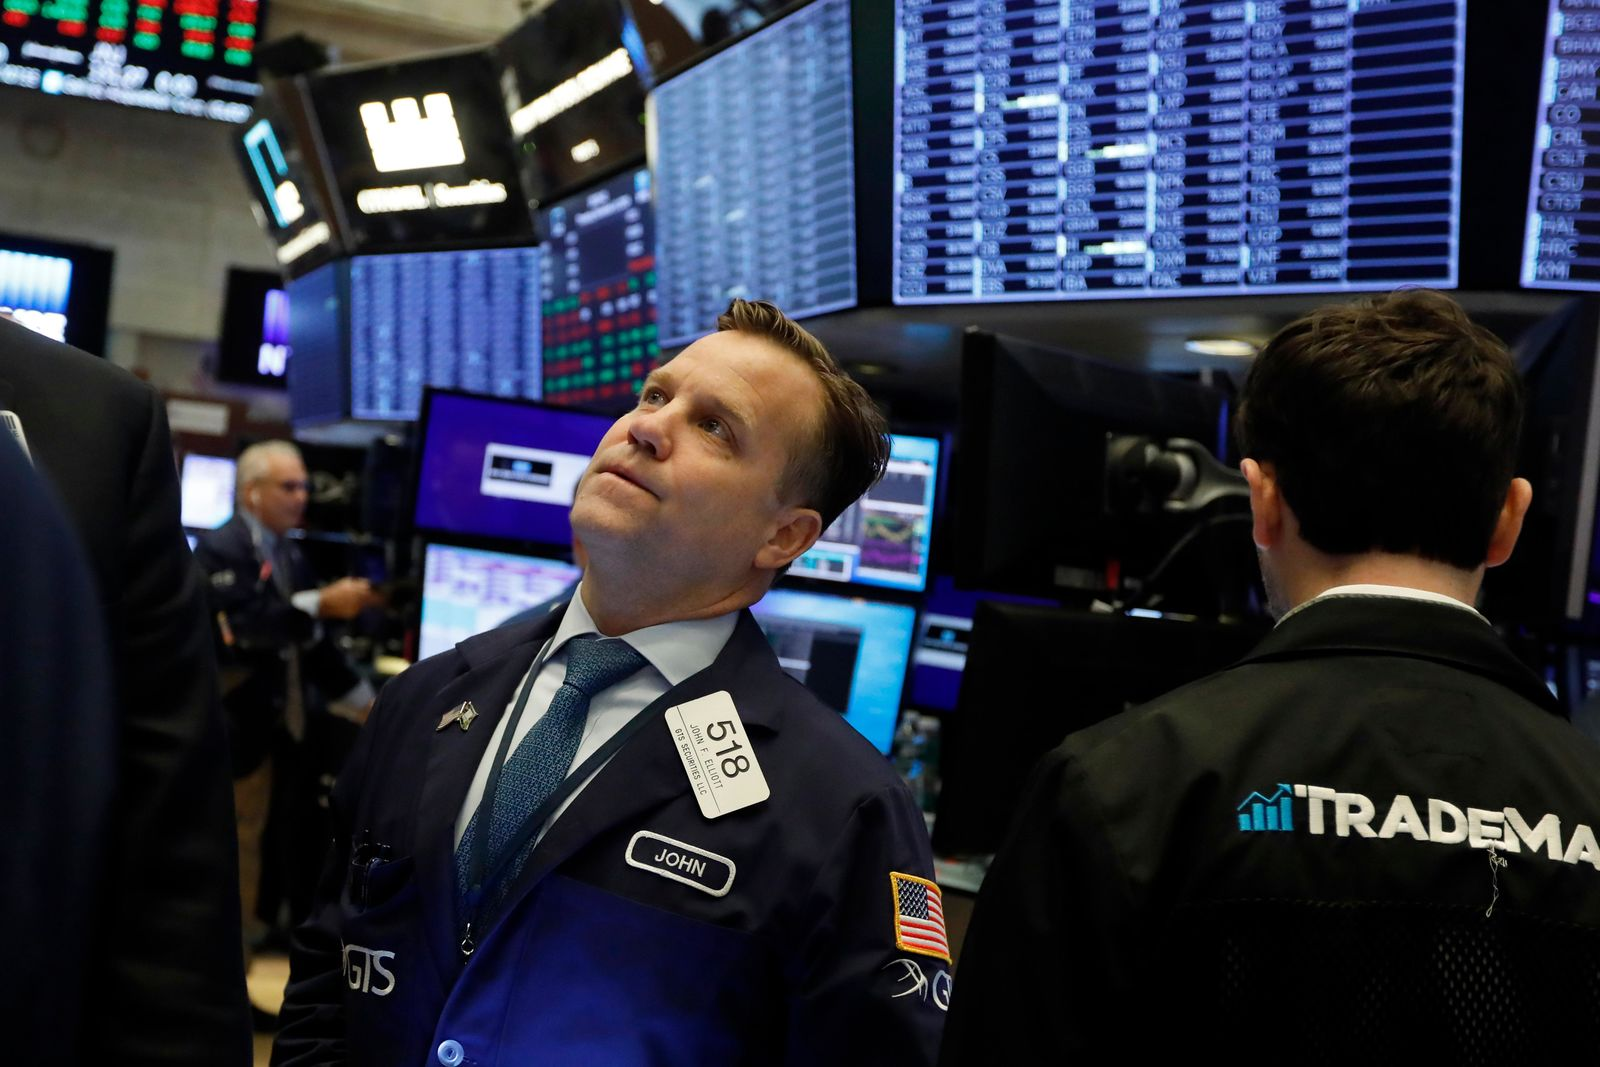 FILE - In this Nov. 14, 2019, file photo trader John Elliott works on the floor of the New York Stock Exchange. The U.S. stock market opens at 9:30 a.m. EST on Tuesday, Dec. 3. (AP Photo/Richar